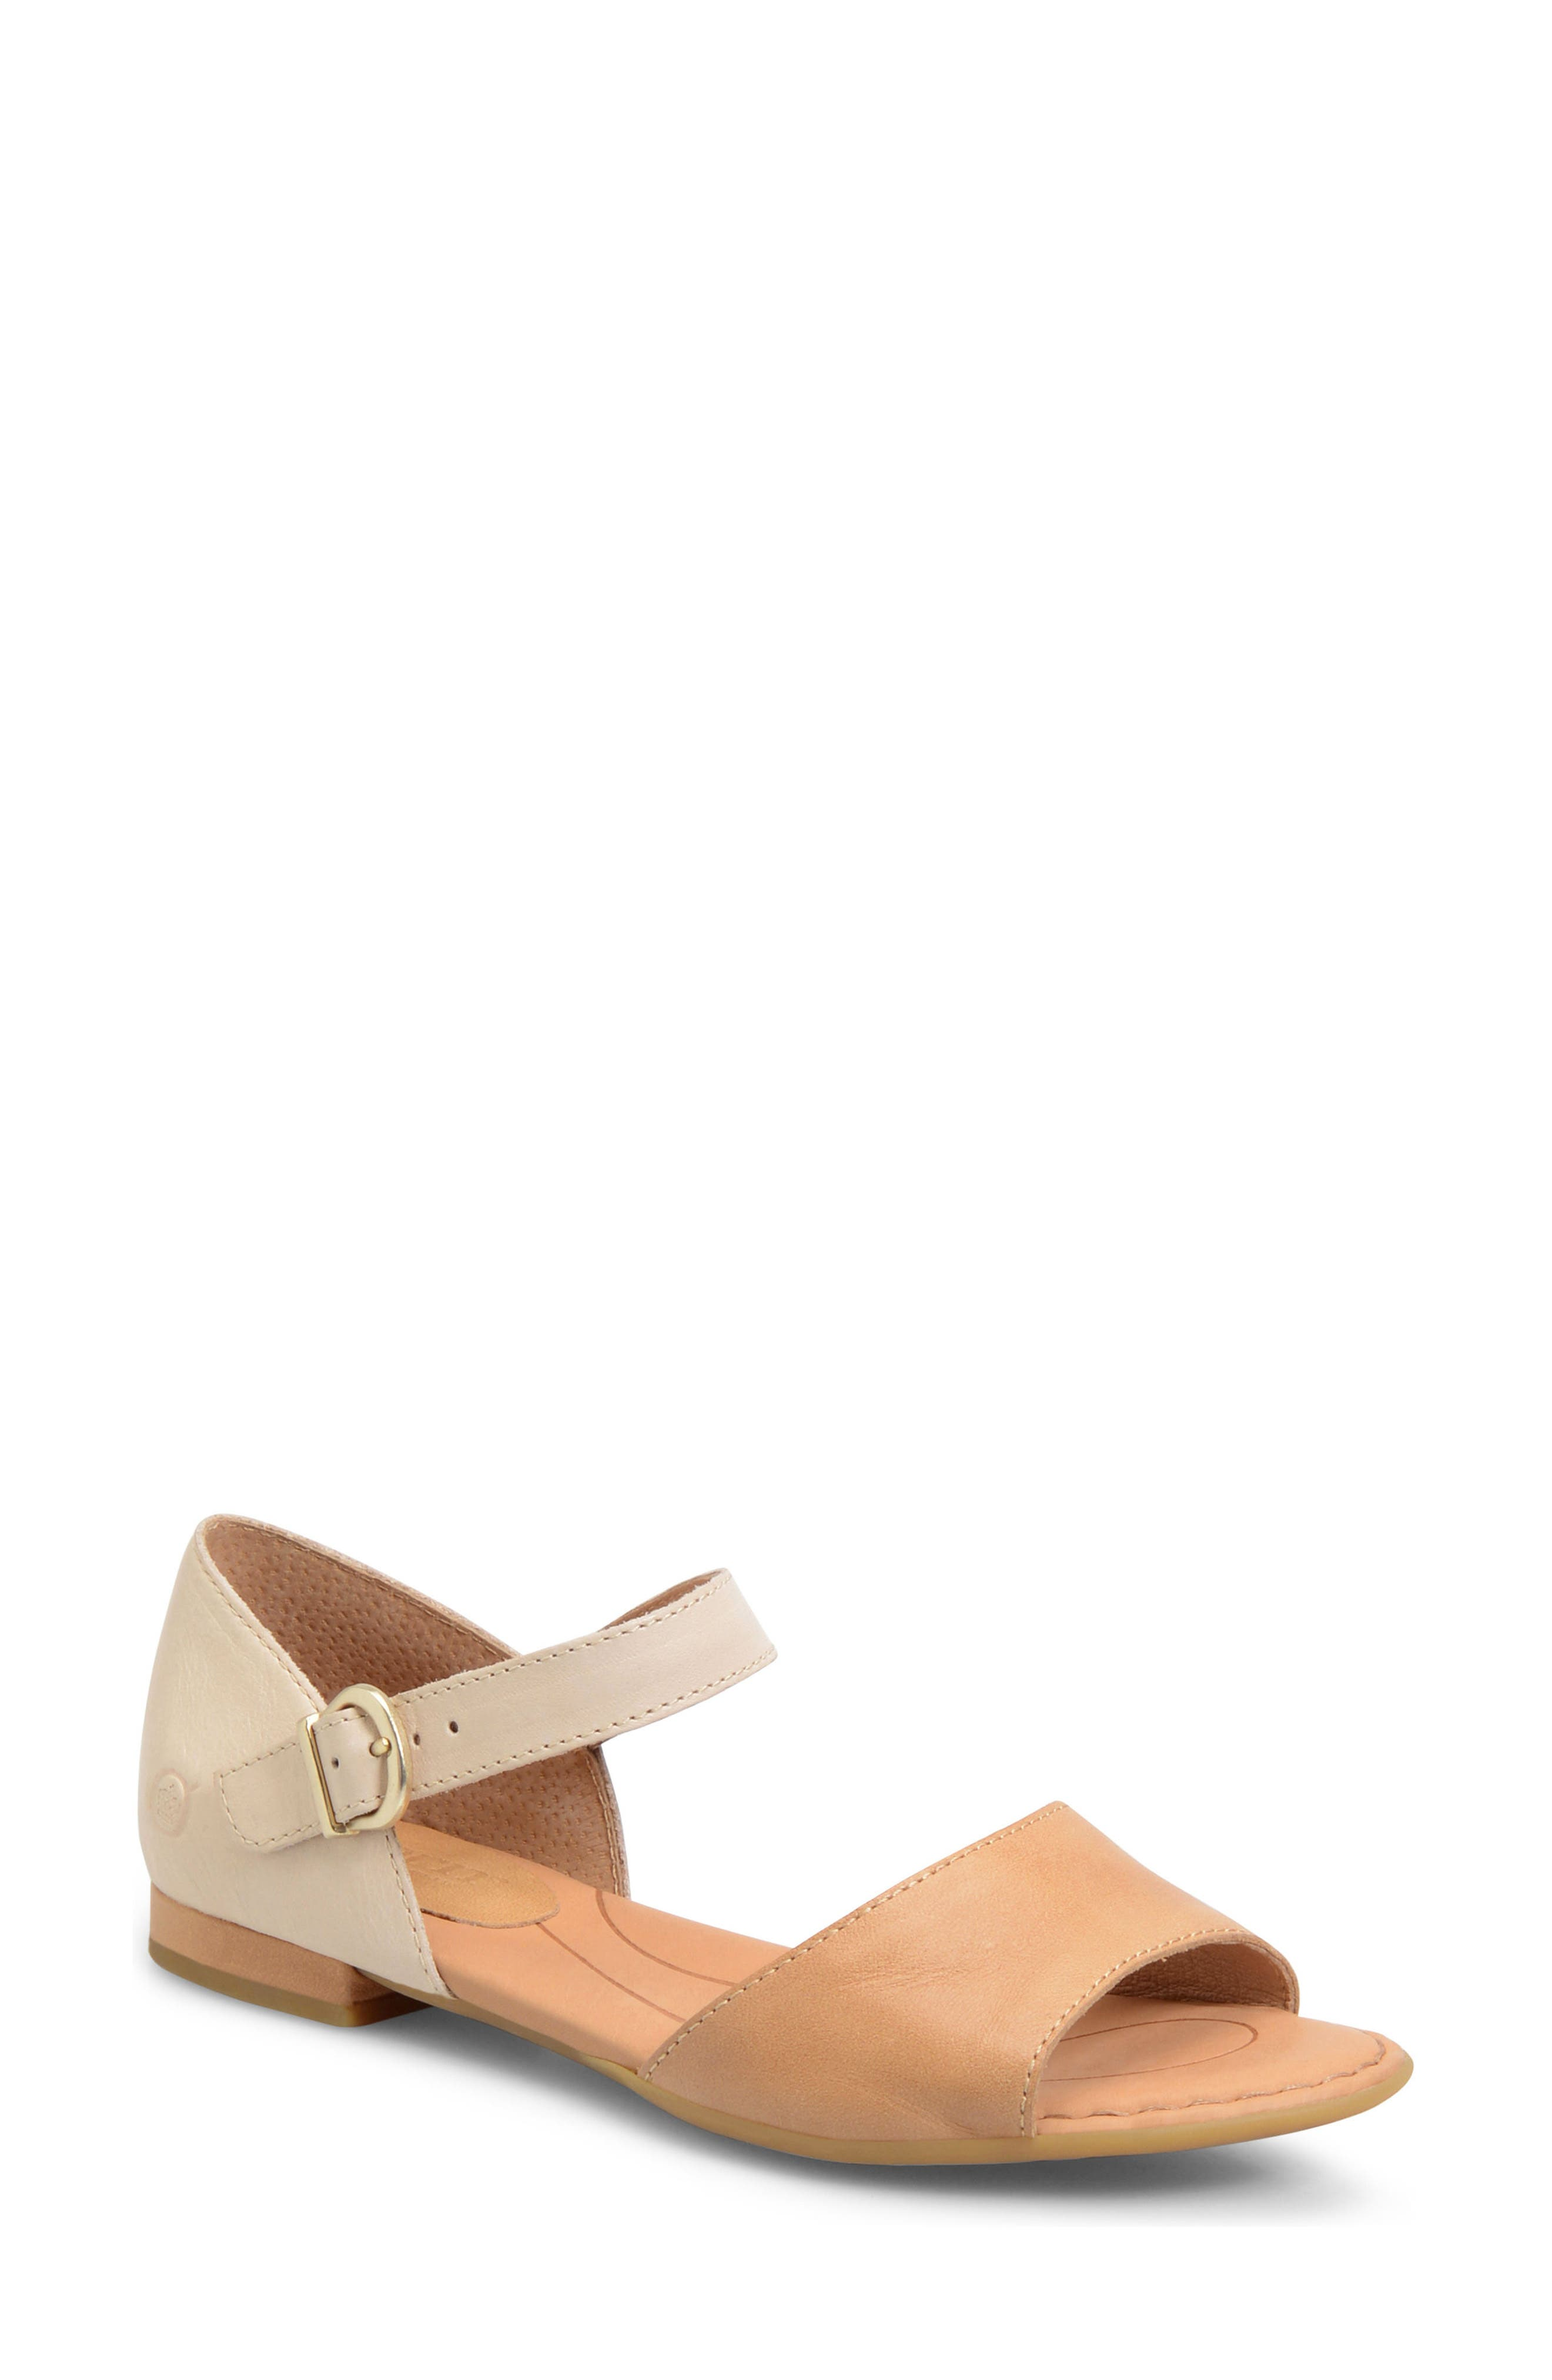 Cairo d'Orsay Sandal,                         Main,                         color, Natural Leather